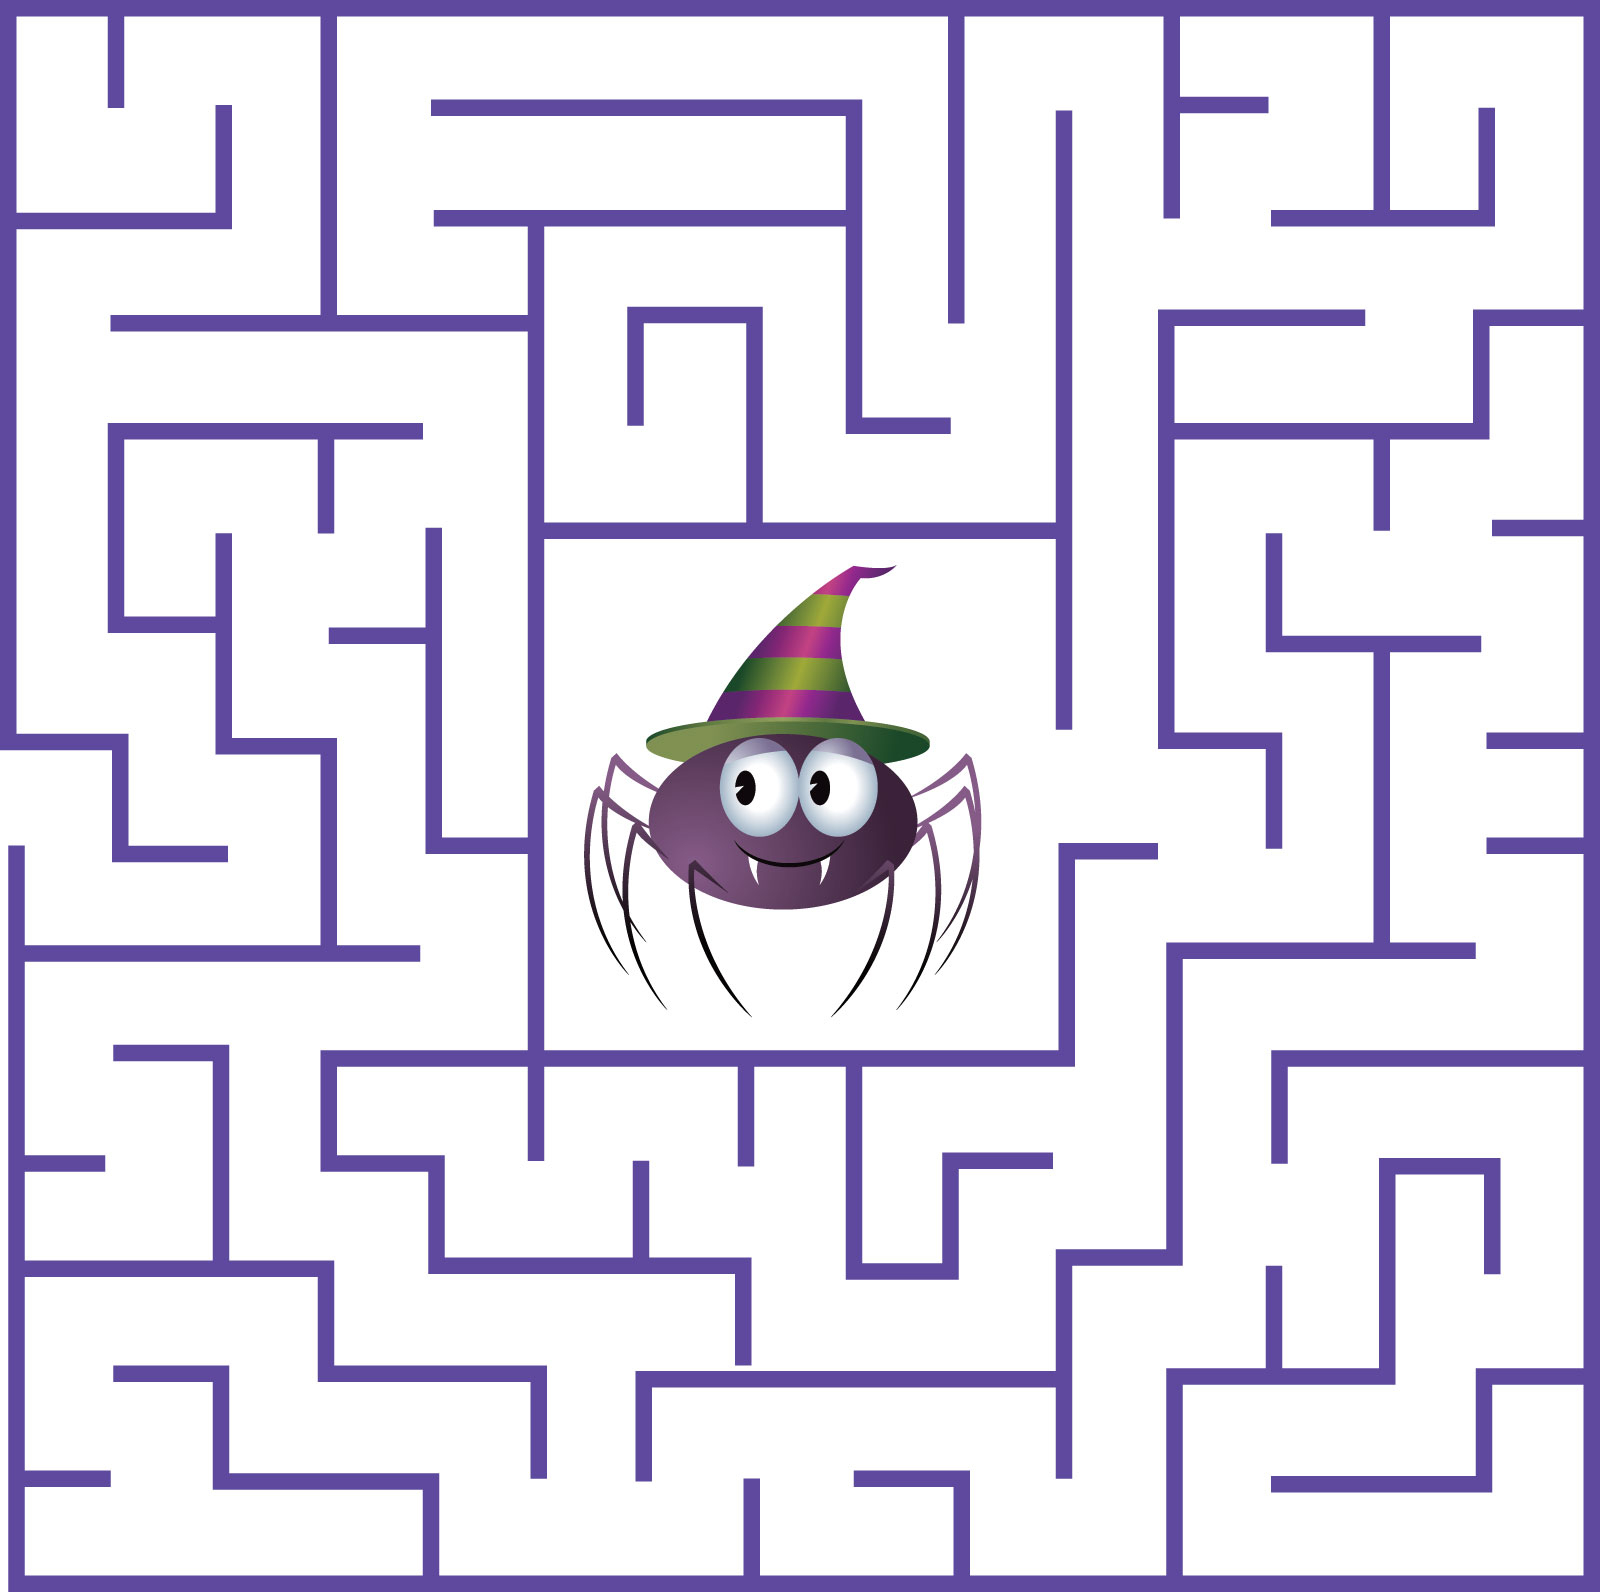 28 Free Printable Mazes For Kids And Adults | Kittybabylove - Free Printable Mazes